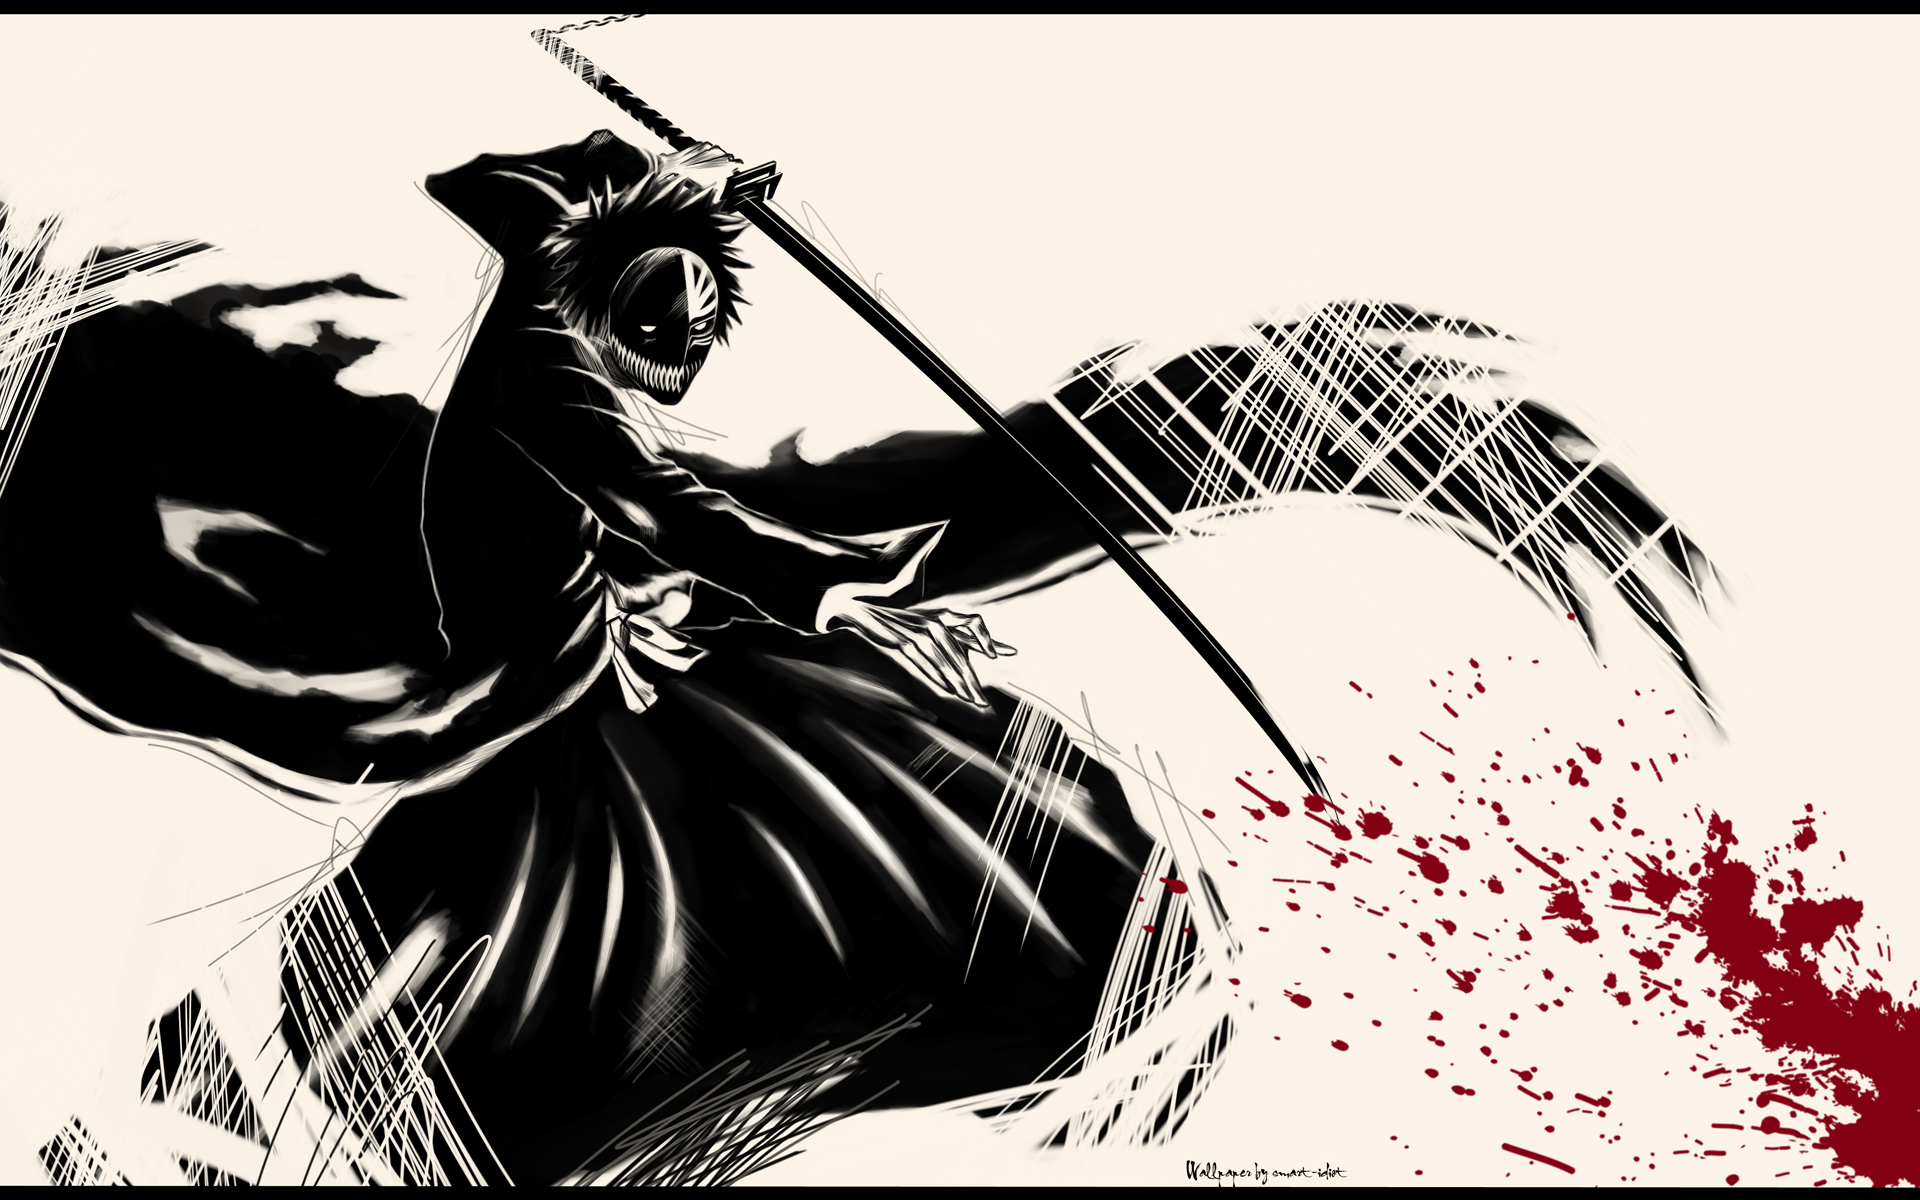 Bleach Wallpapers 1080p Hd Desktop Wallpapers 4k Hd